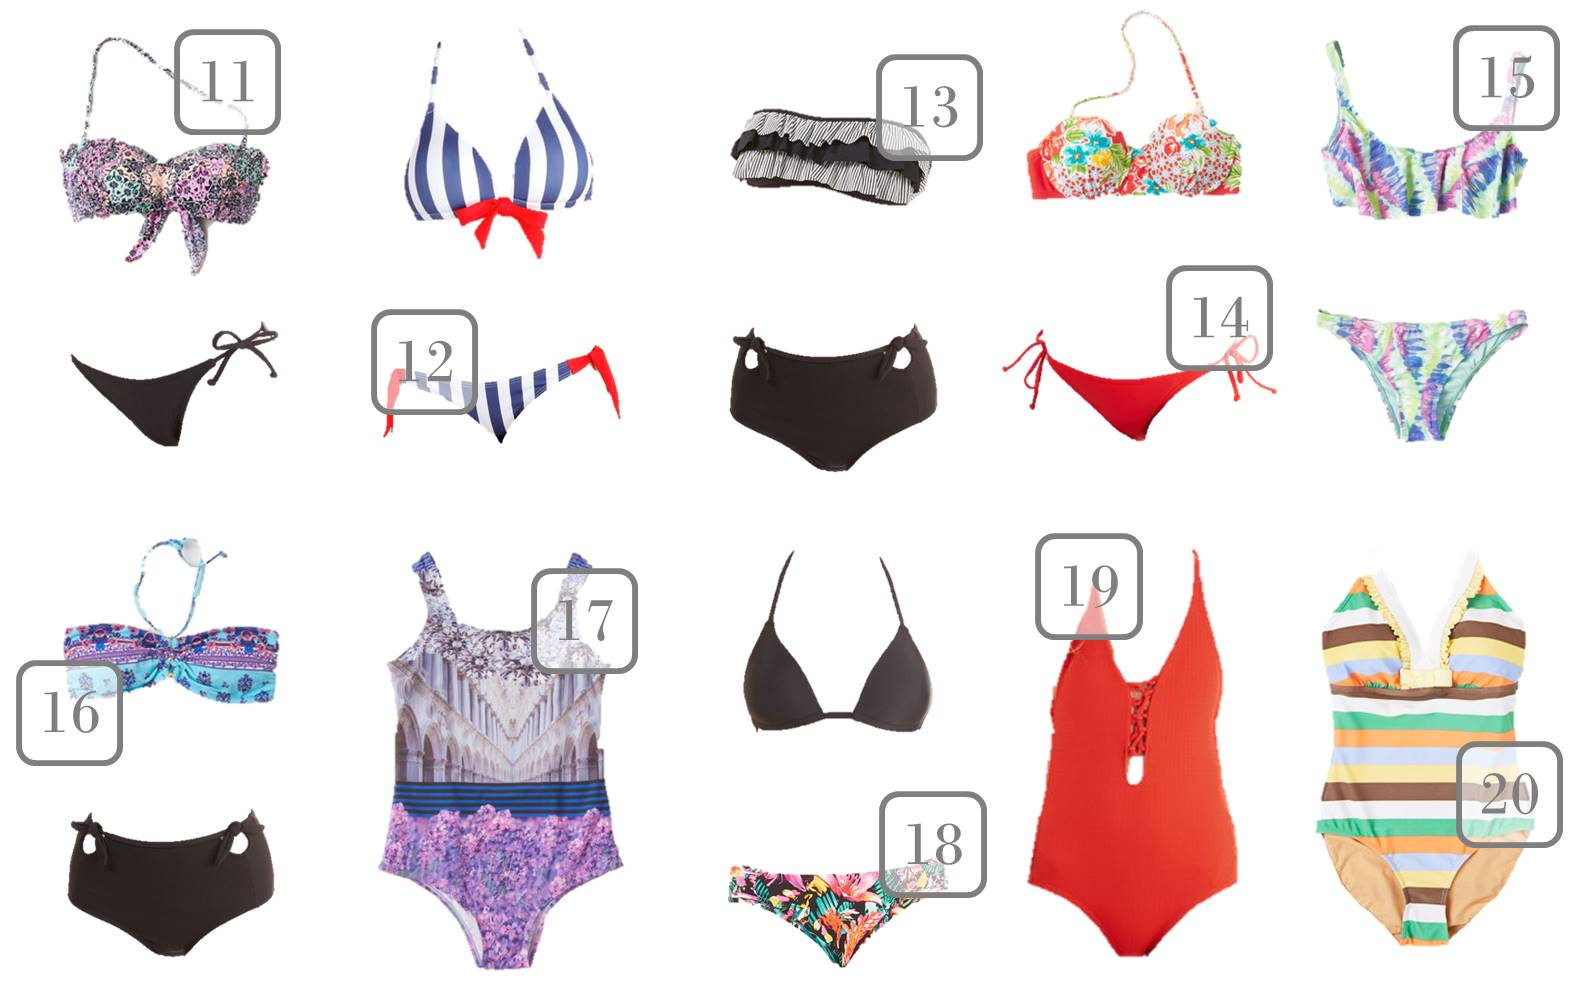 We've rounded up 20 of the hottest one and two-piece summer teen fashion swimsuits under $50! Be stylish on the beach without wiping out your allowance!